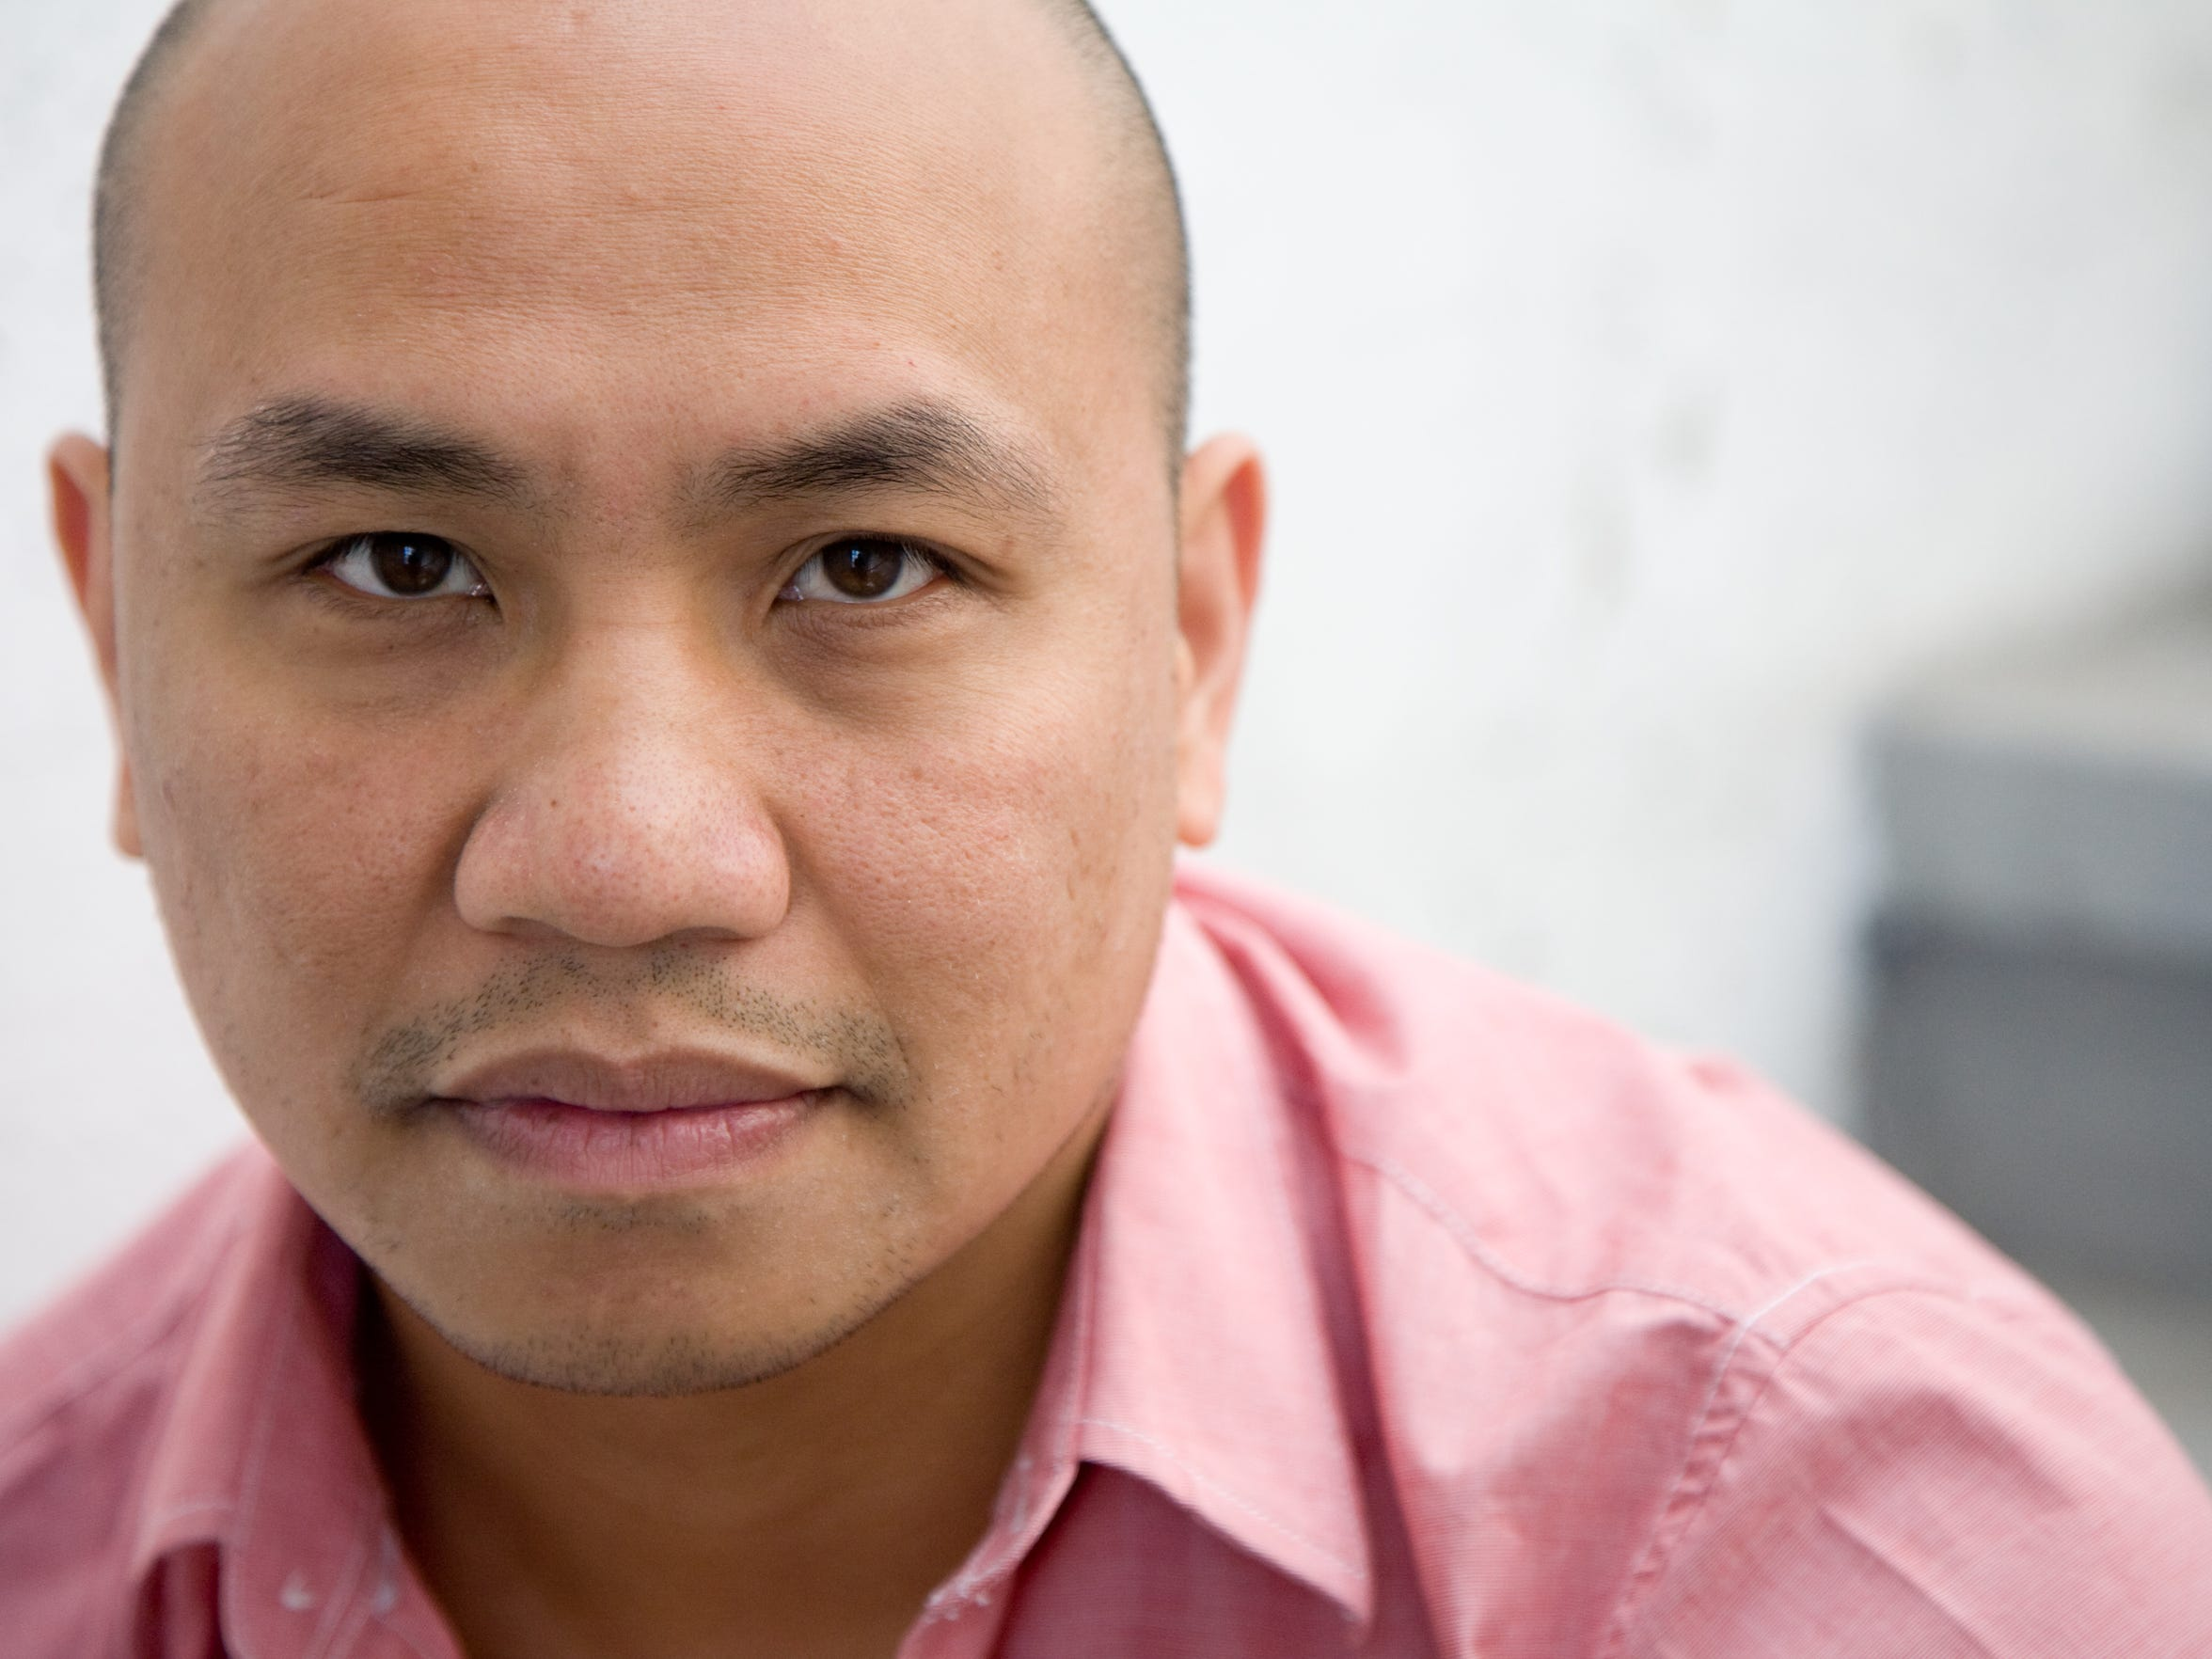 Rutgers professor and poet Patrick Rosal shares a New Jersey upbringing and sensibility with his friend and colleague Paul Lisicky. 'Paul and I are so alike in a lot of ways,' he says. 'We love this place, and we complain about it, too.'